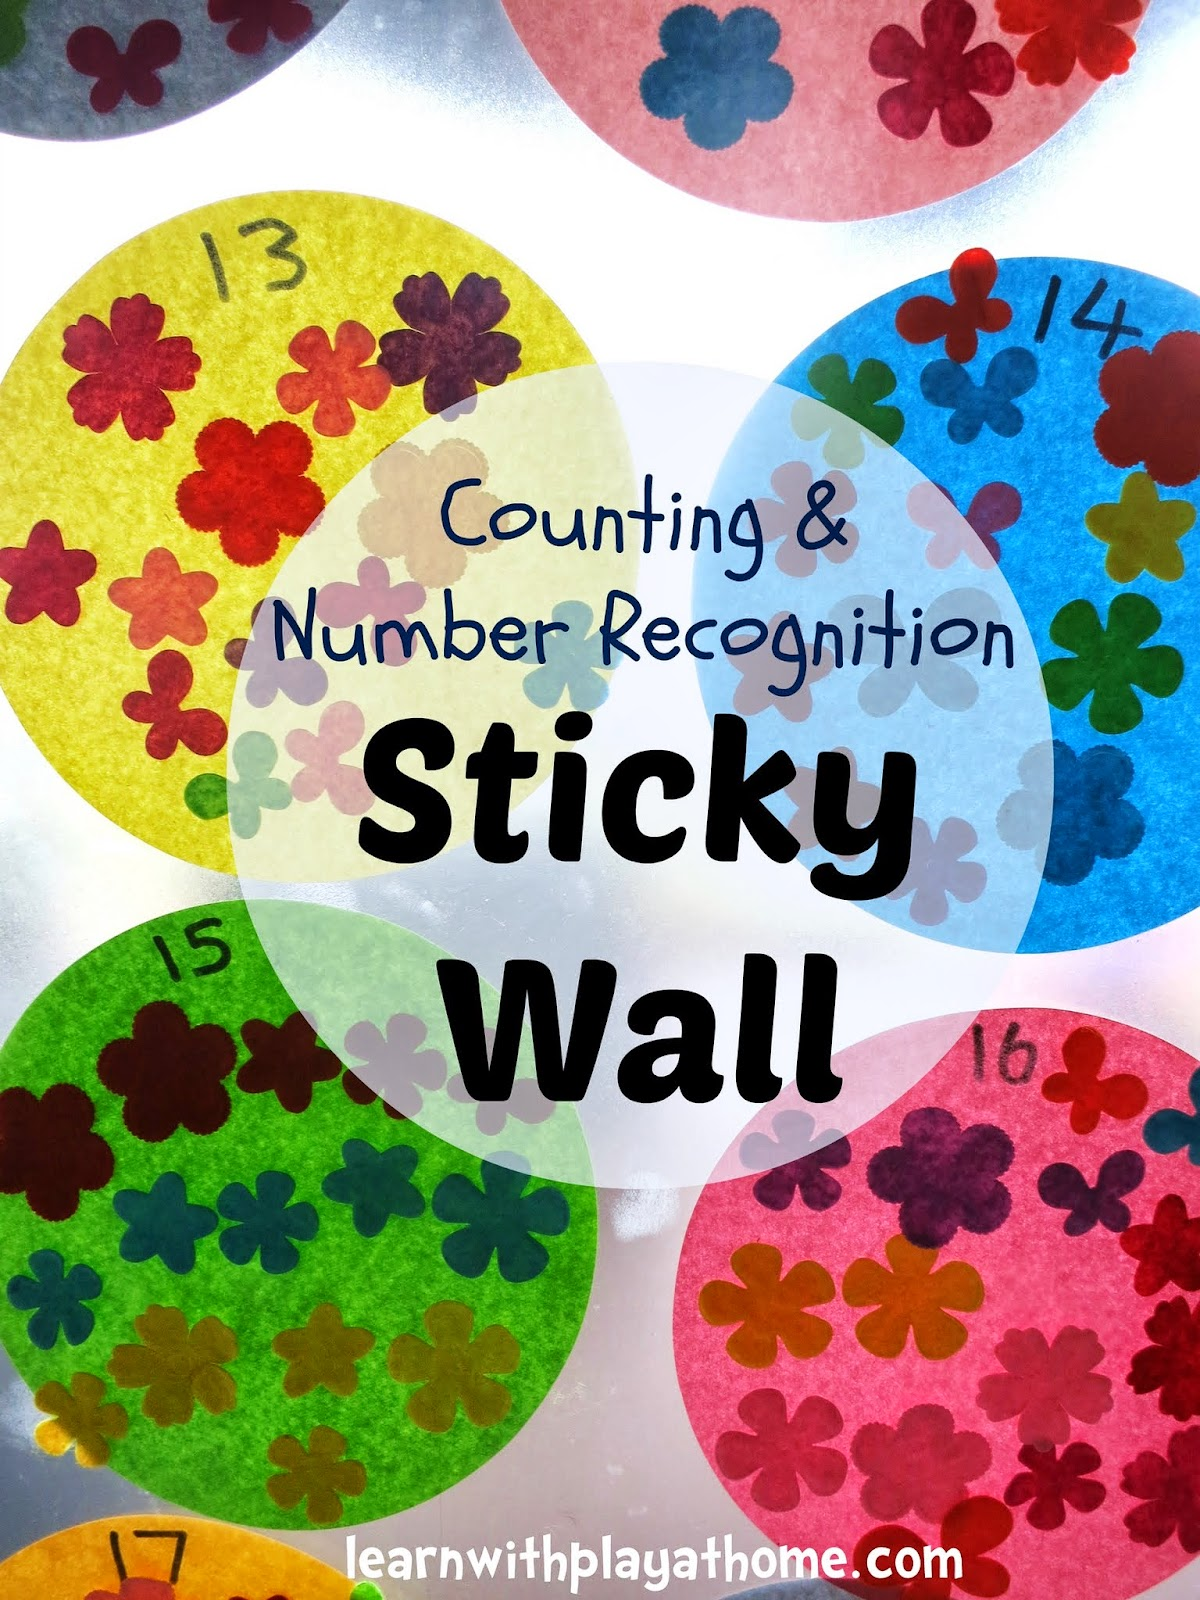 Learn With Play At Home Counting And Number Recognition Sticky Wall Activity